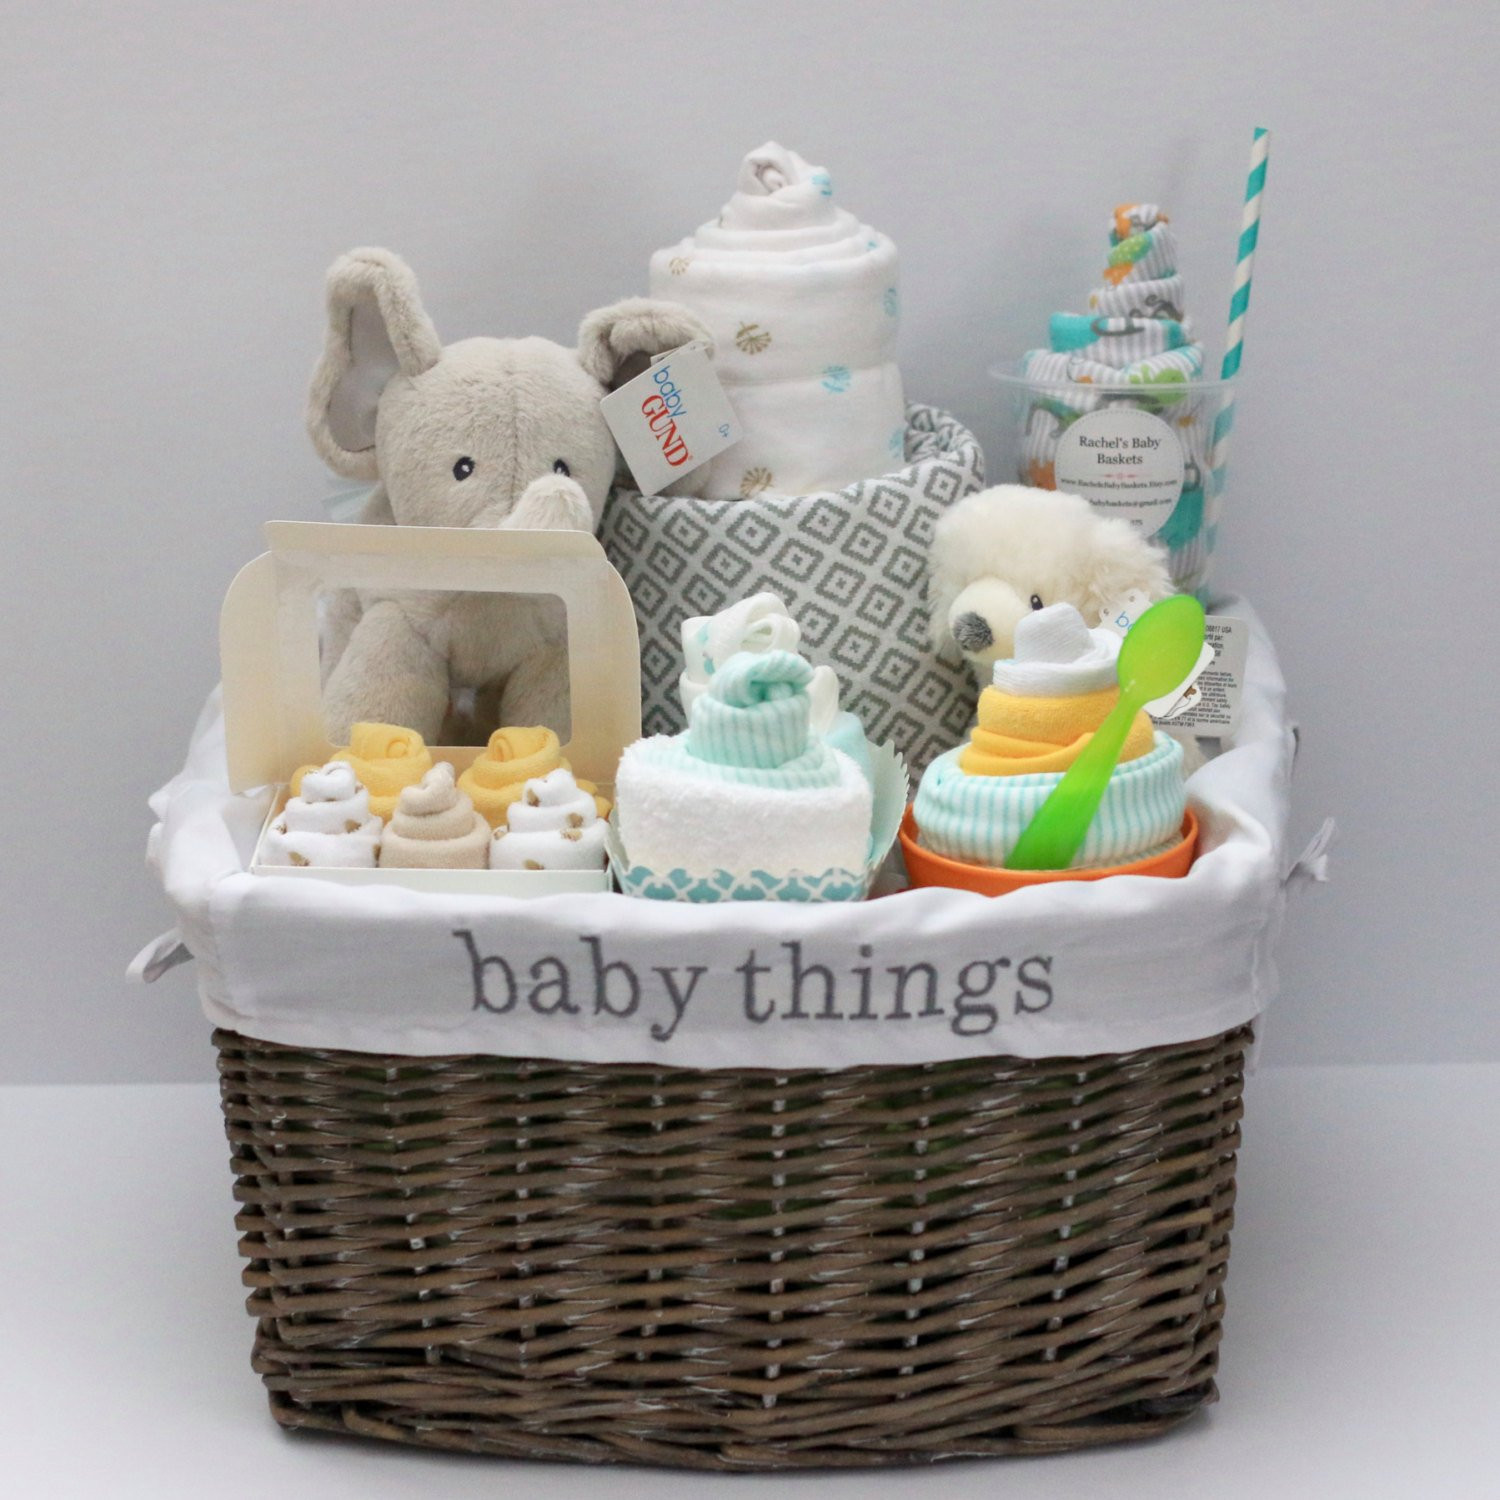 Best ideas about Unisex Baby Gift Ideas . Save or Pin Gender Neutral Baby Gift Basket Baby Shower Gift Unique Baby Now.